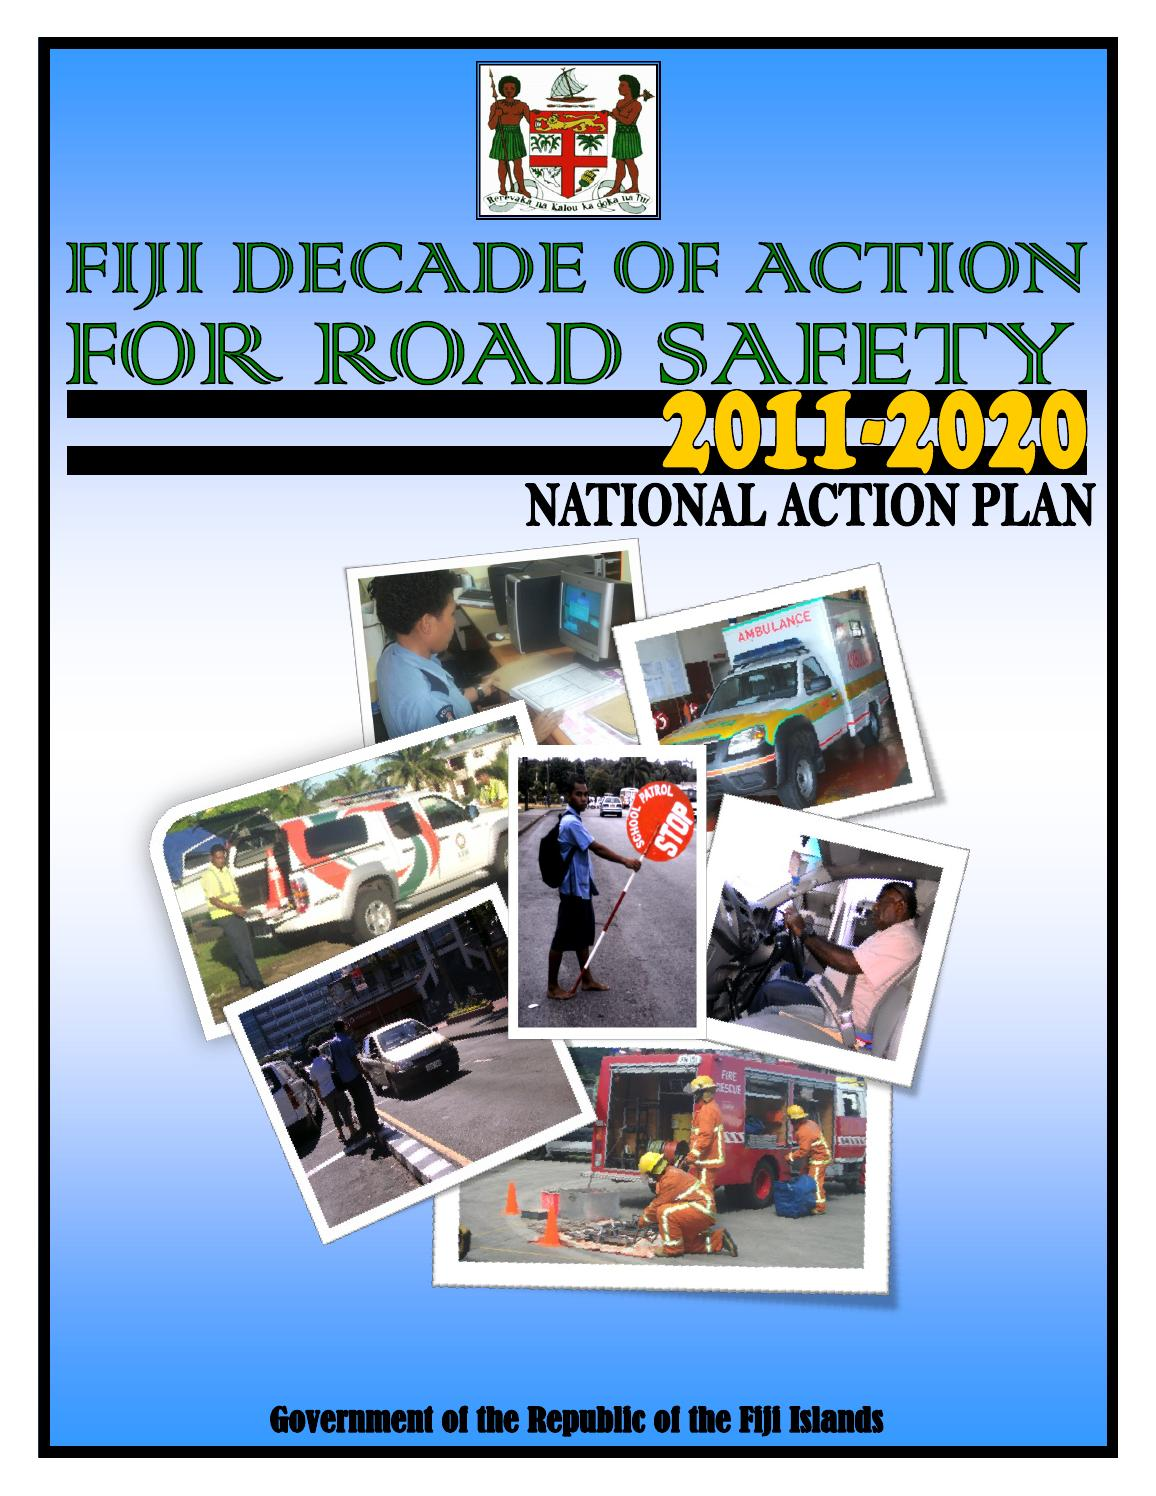 Decade of action for road safety bookle by Fiji Roads